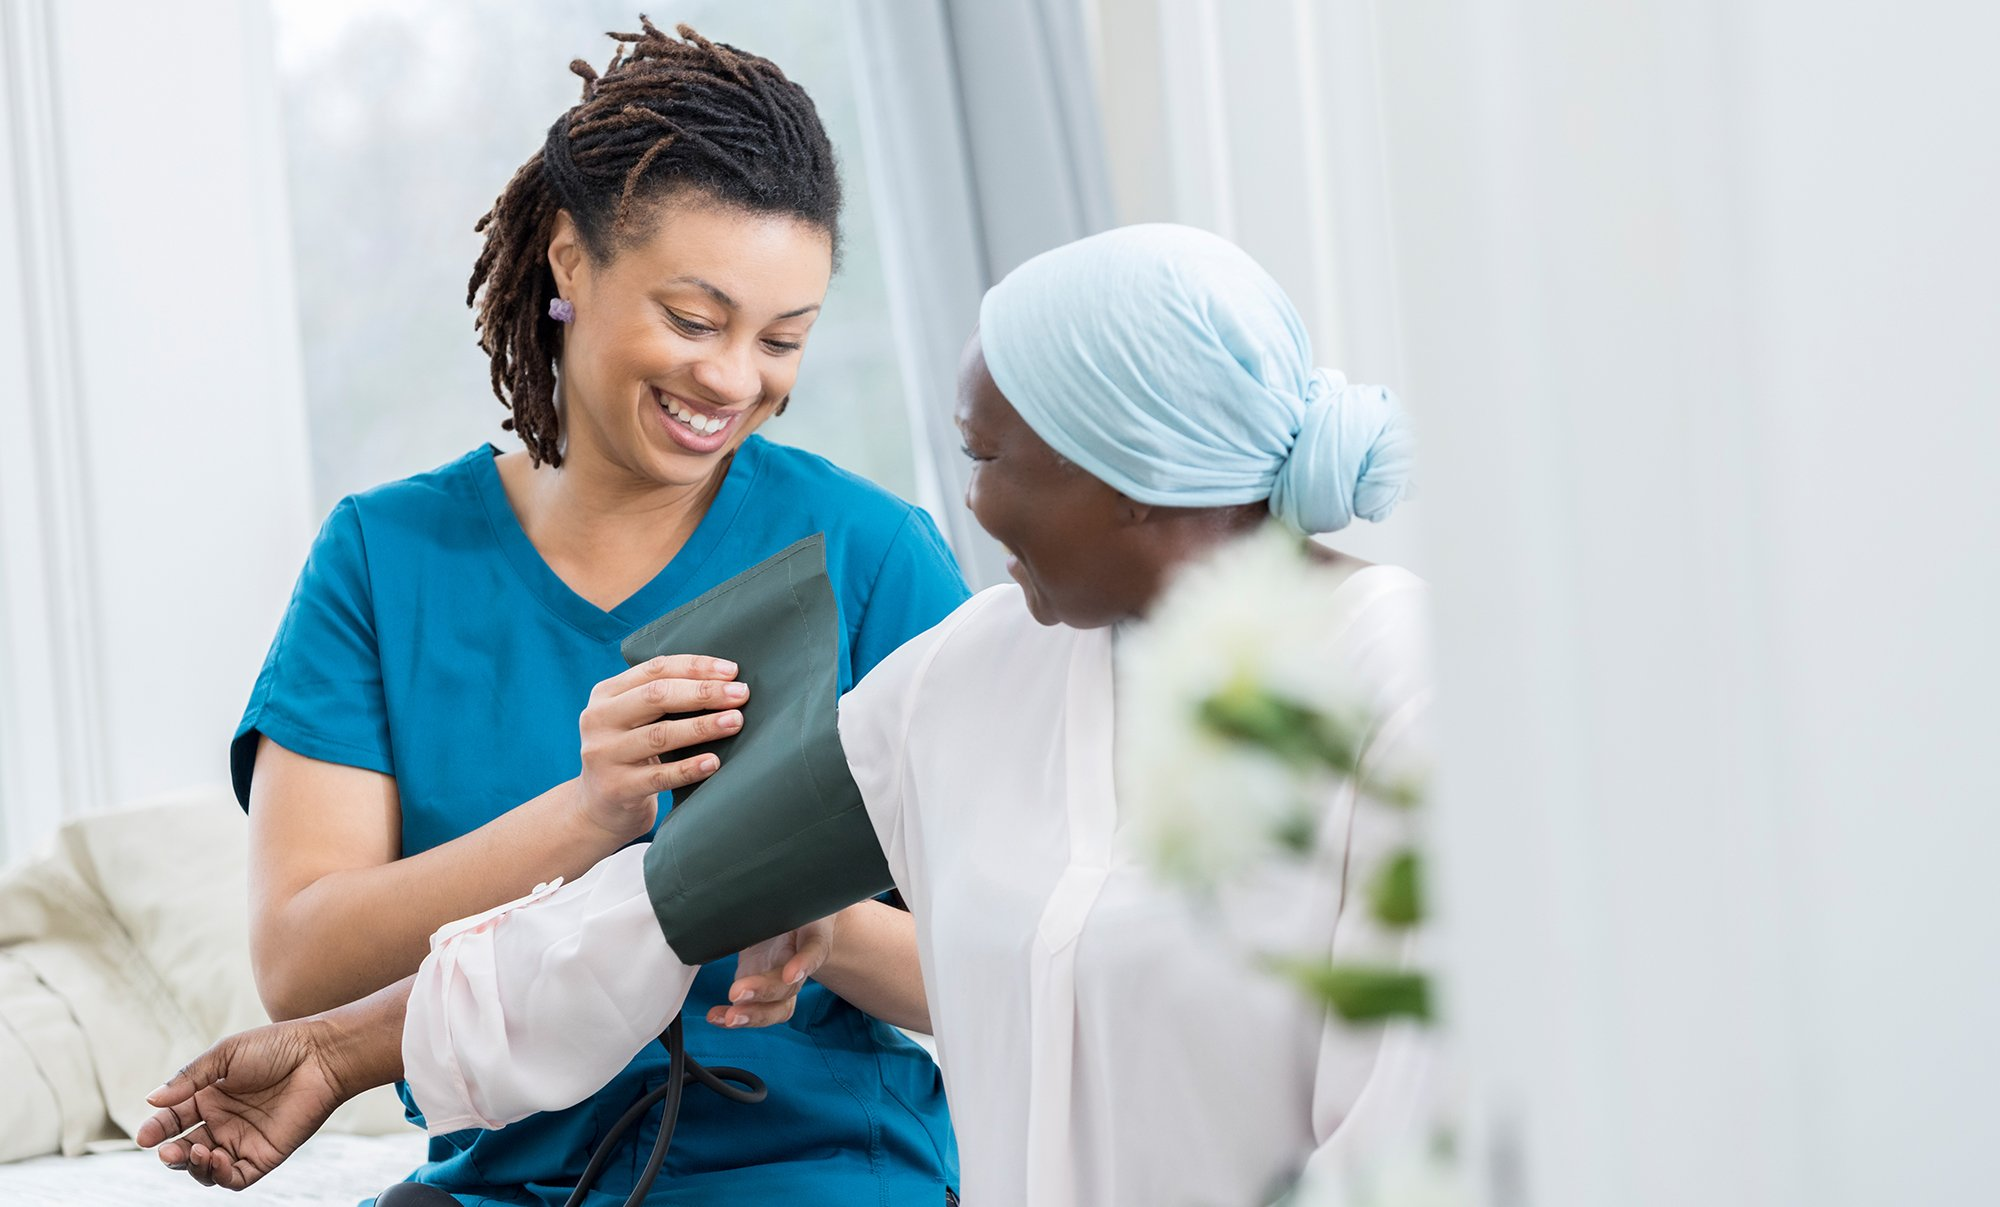 Nurse caring for a patient by taking blood pressure